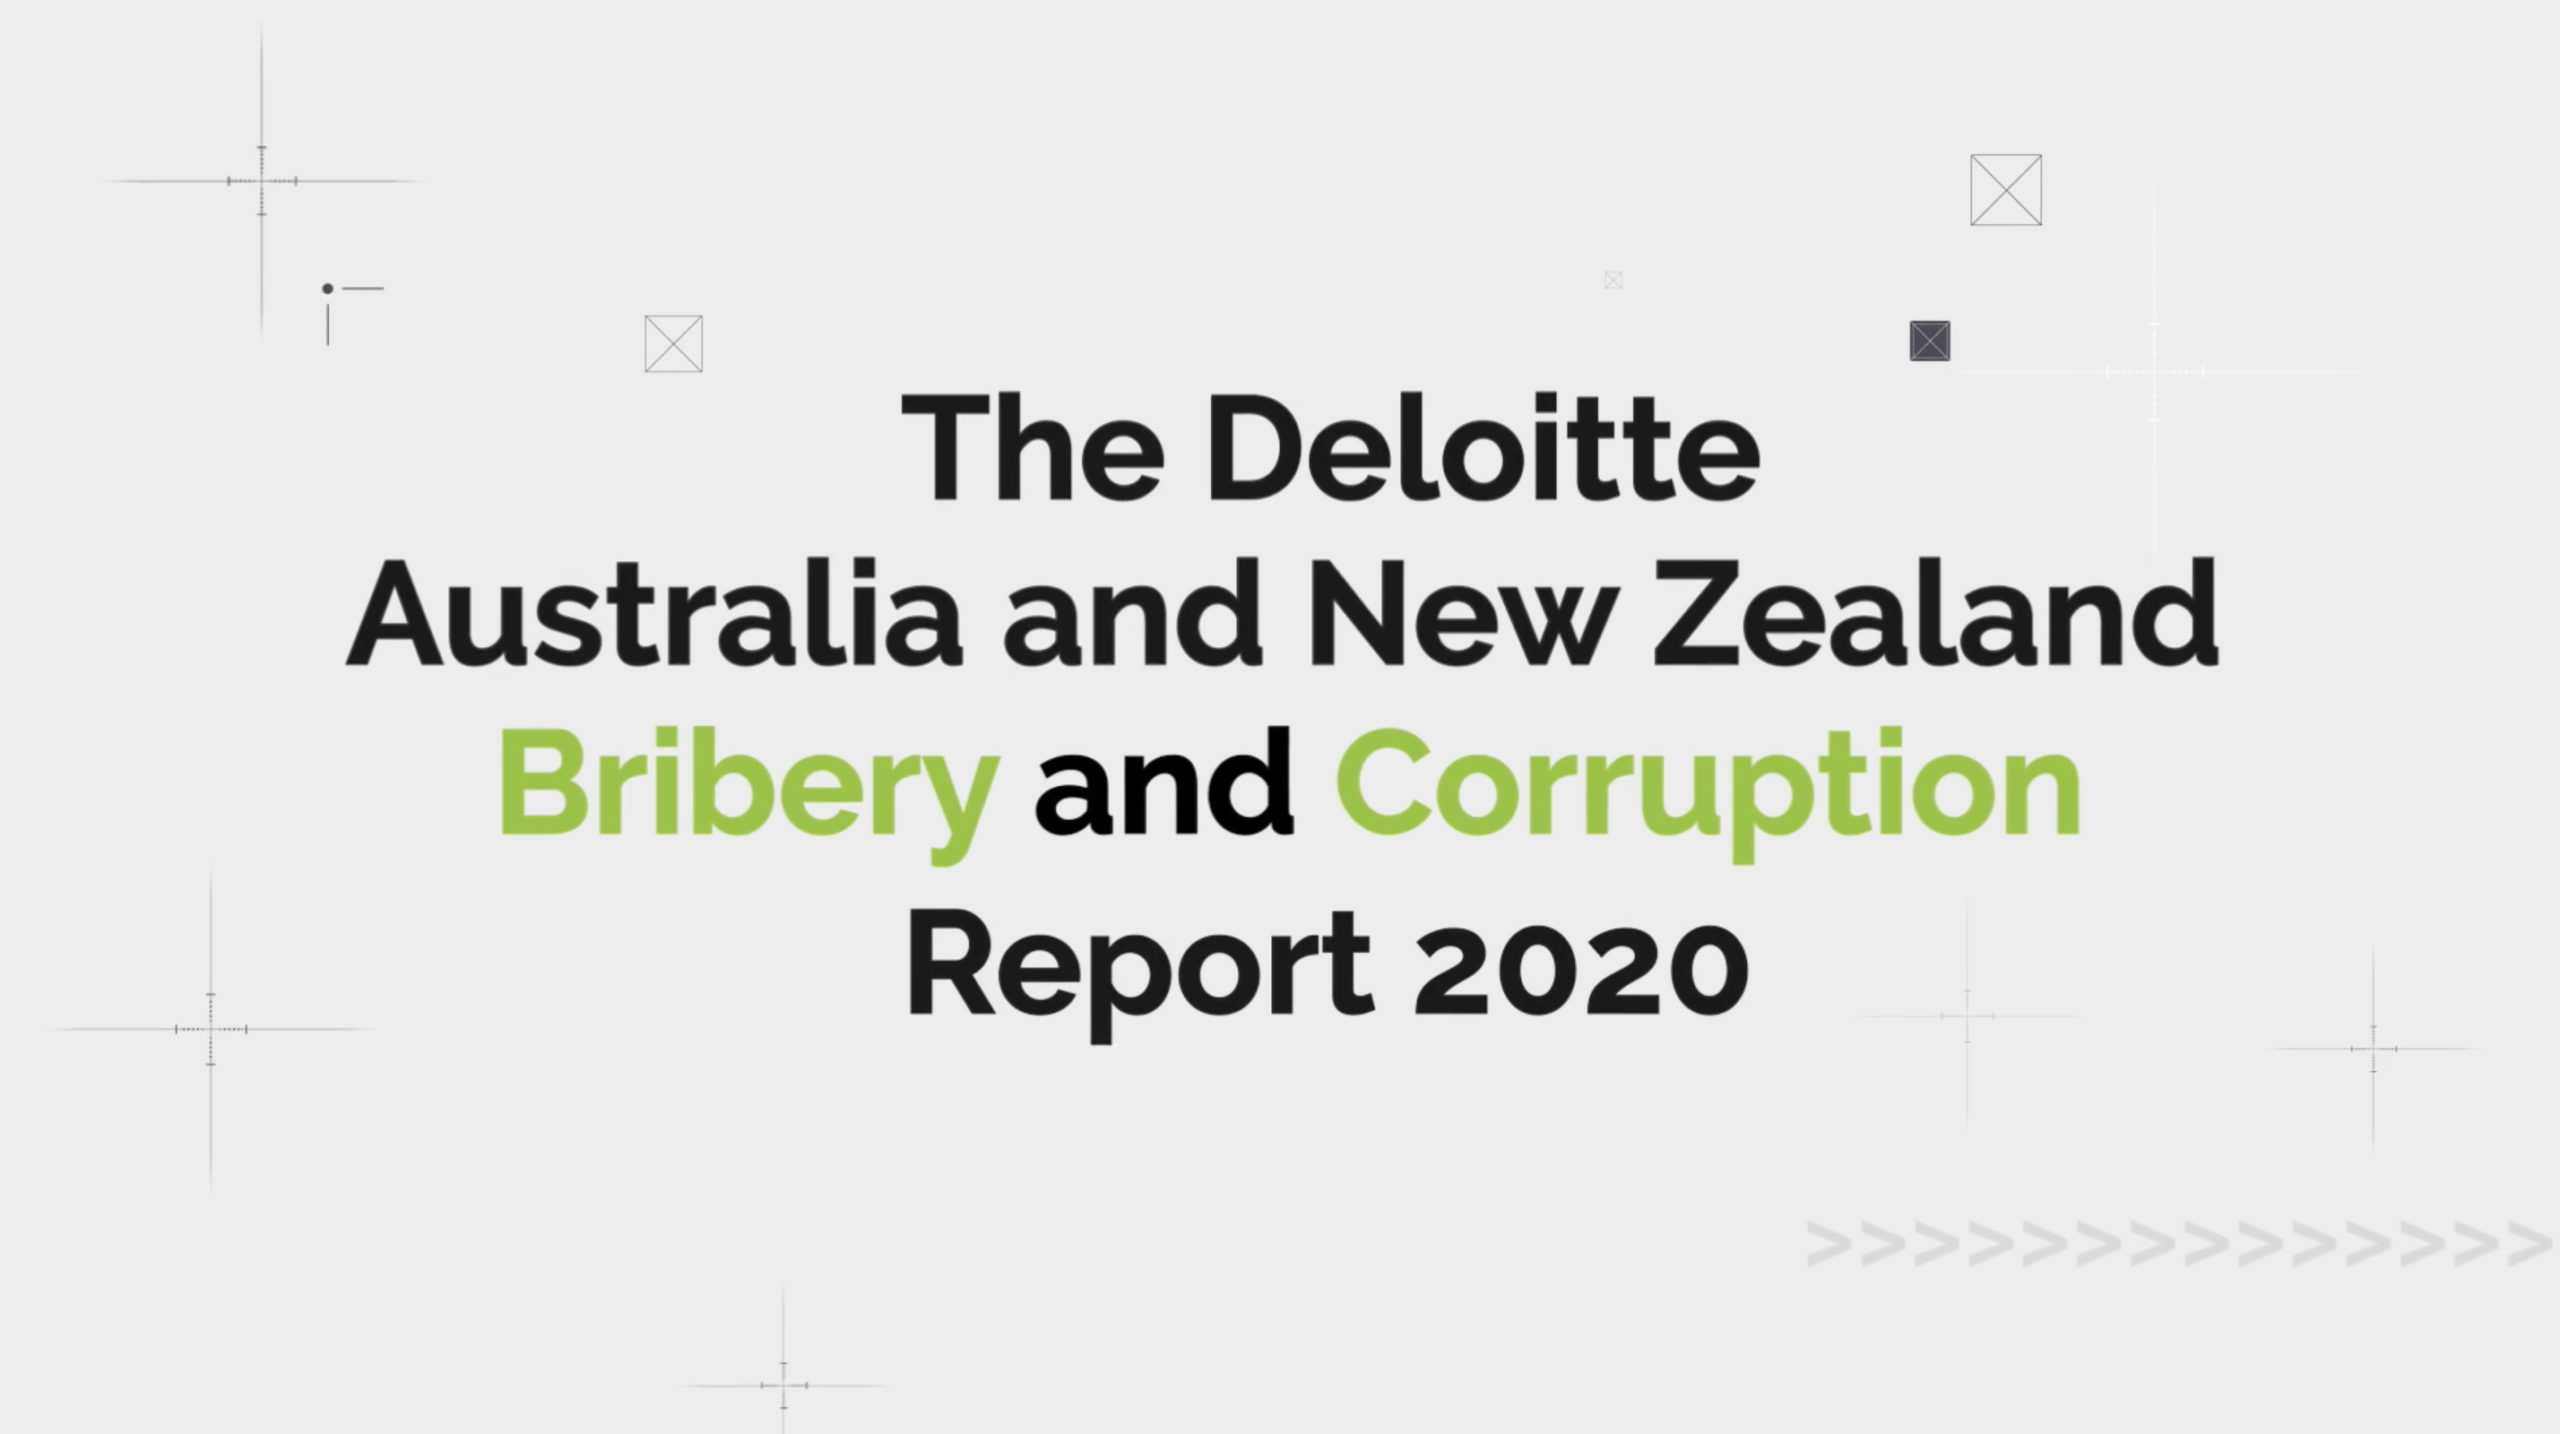 The Deloitte Australia and New Zealand Bribery and Corruption Report 2020 Animated Video Title Effects